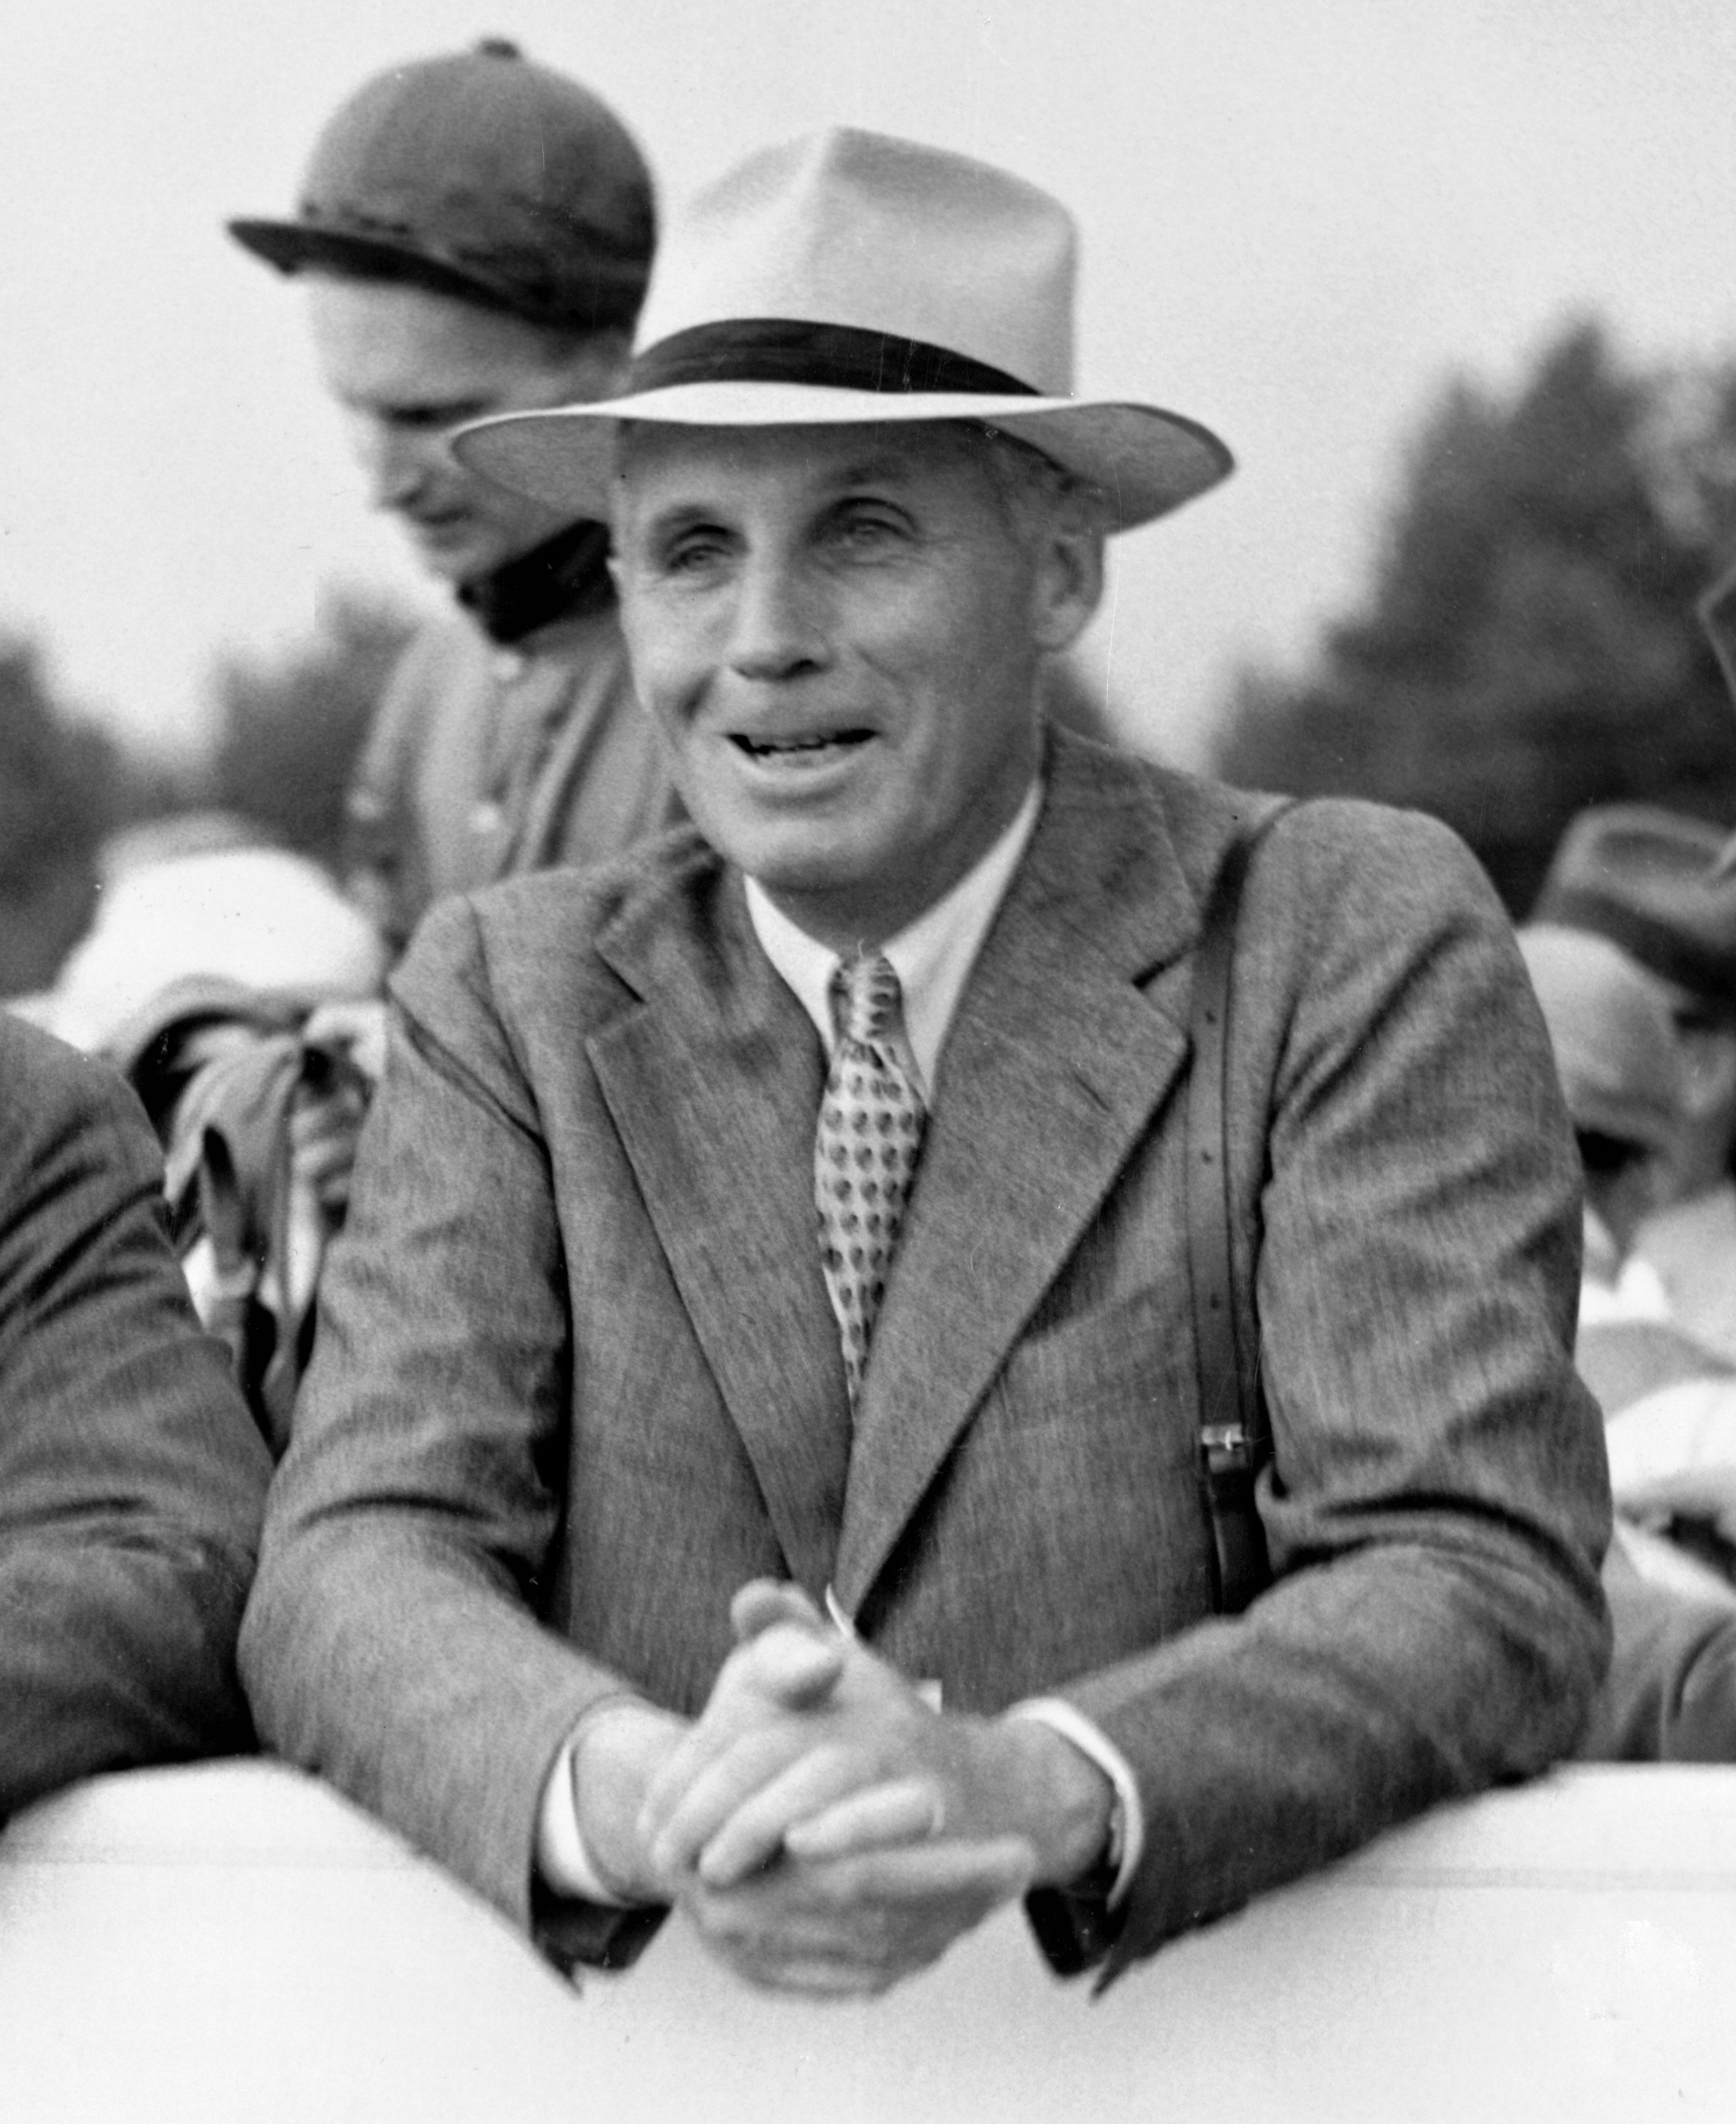 George D. Widener, Jr at the White March Races, September 1941 (Keeneland Library Morgan Collection)